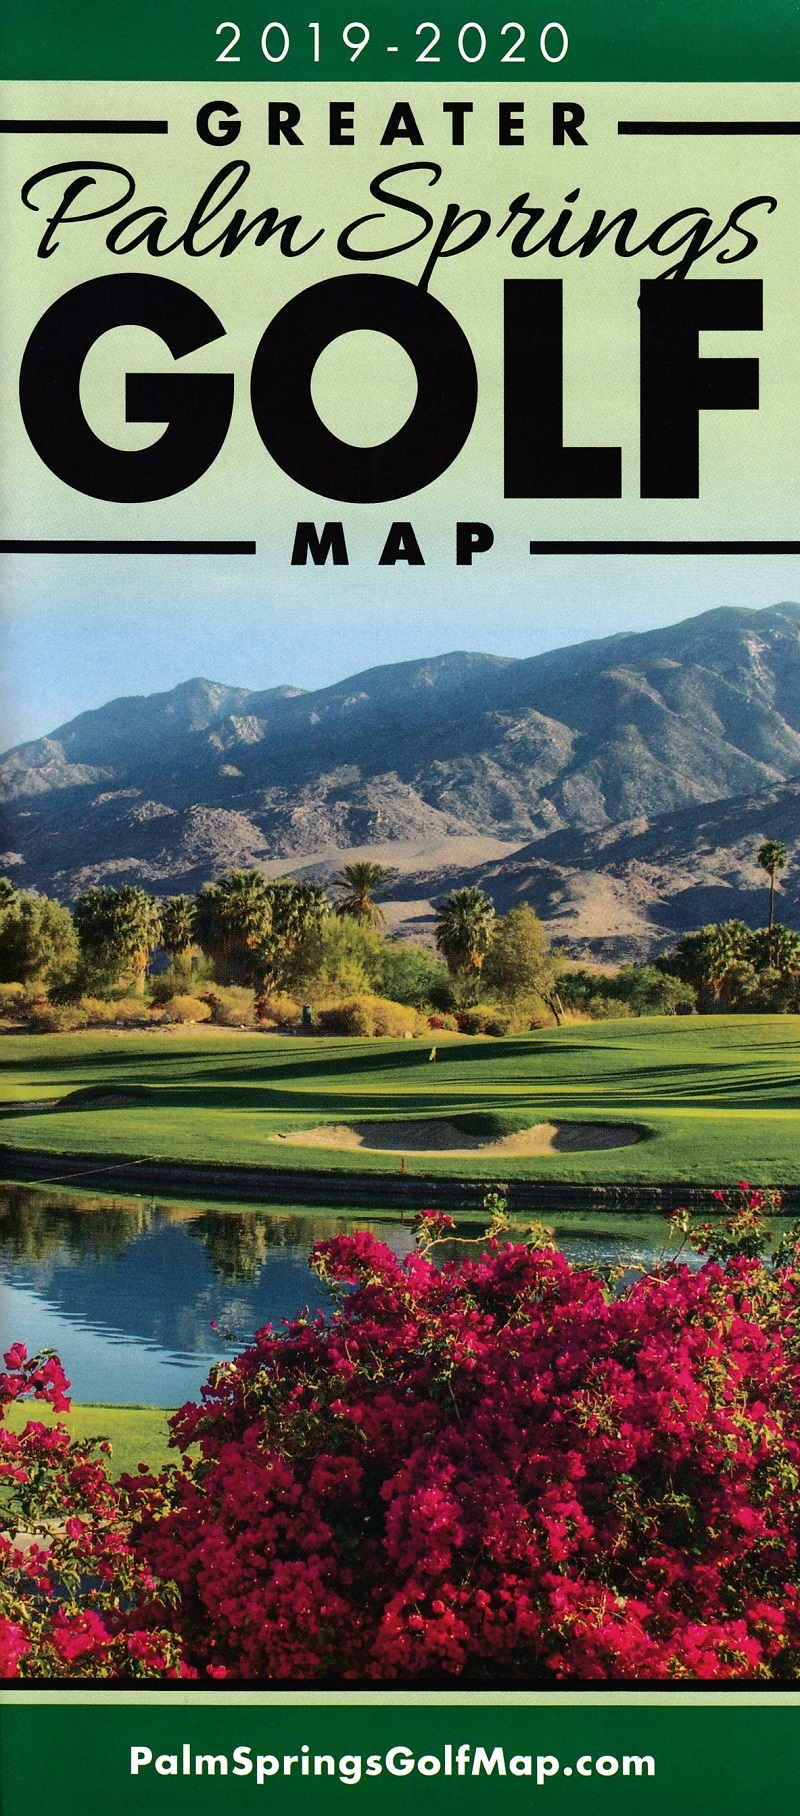 Palm Springs Area Golf Guide